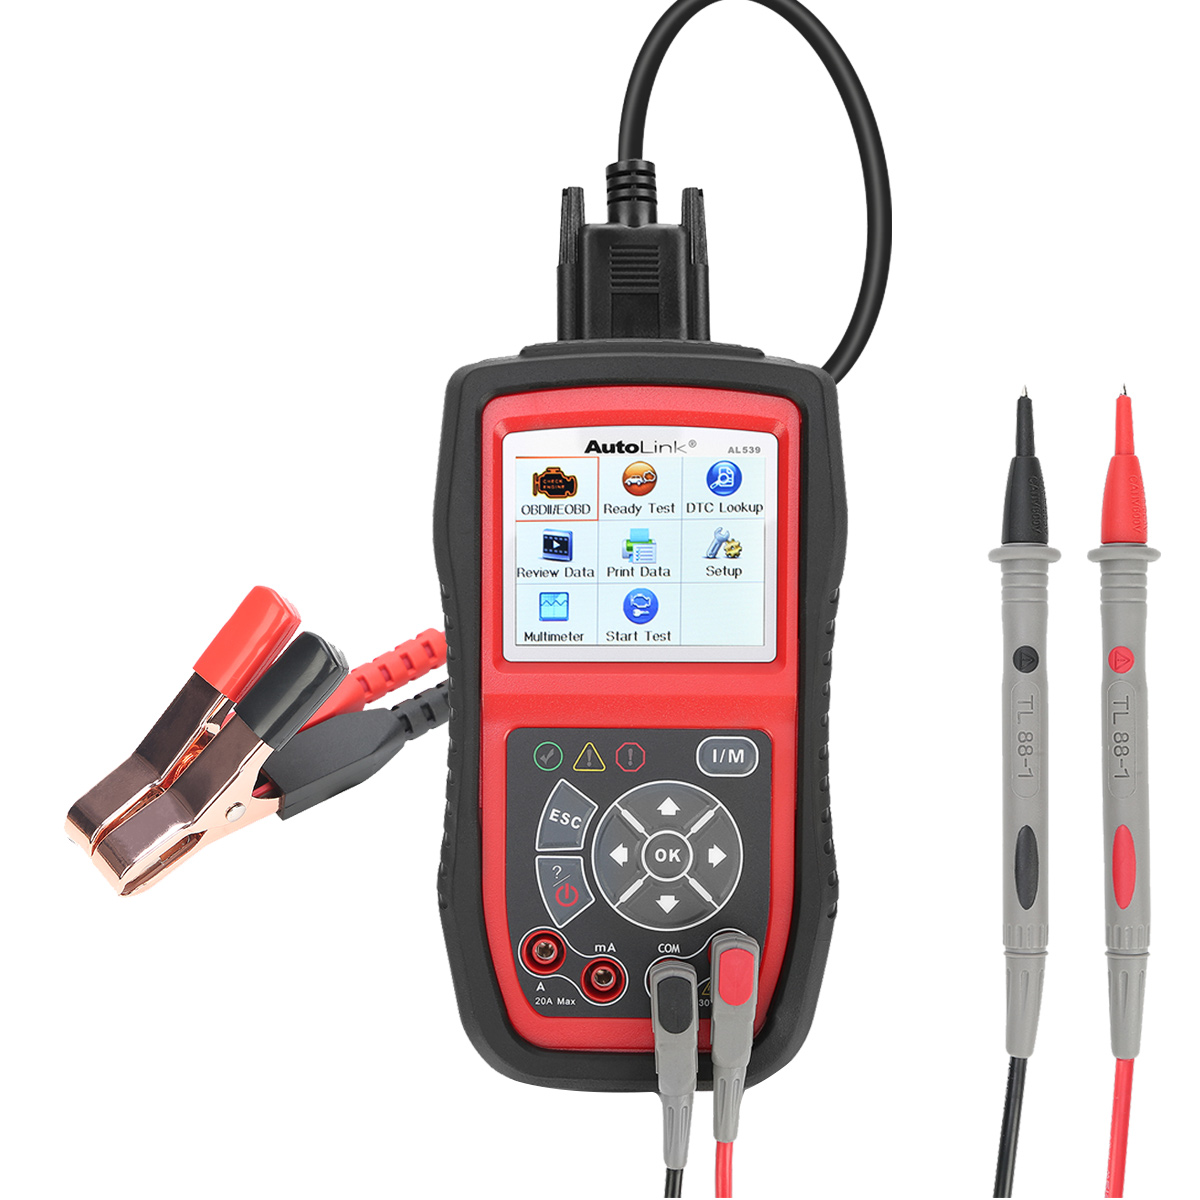 Autel AutoLink AL539B OBDII Battery Tester Automotive Code Reader Full OBD2 Functions Diagnostic Scan Tool